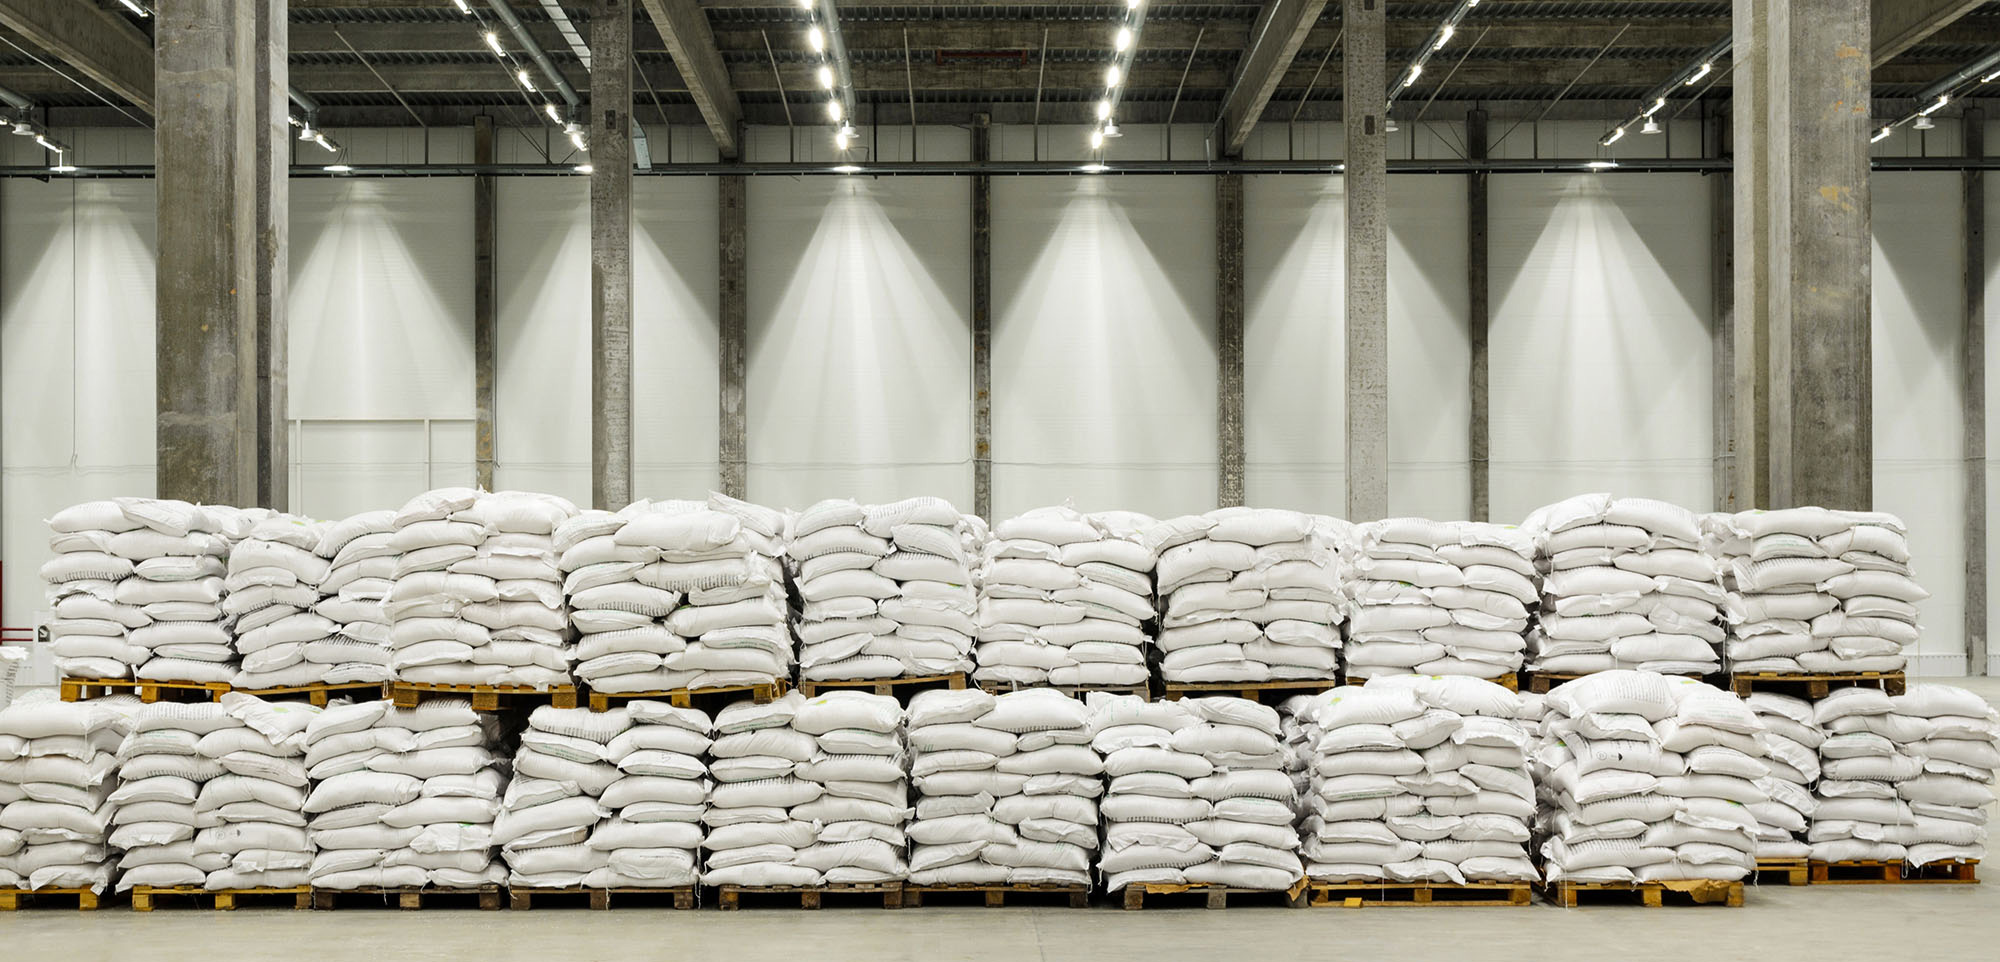 Well Lit Warehouse with Sacks of Rice, Groats and Flour